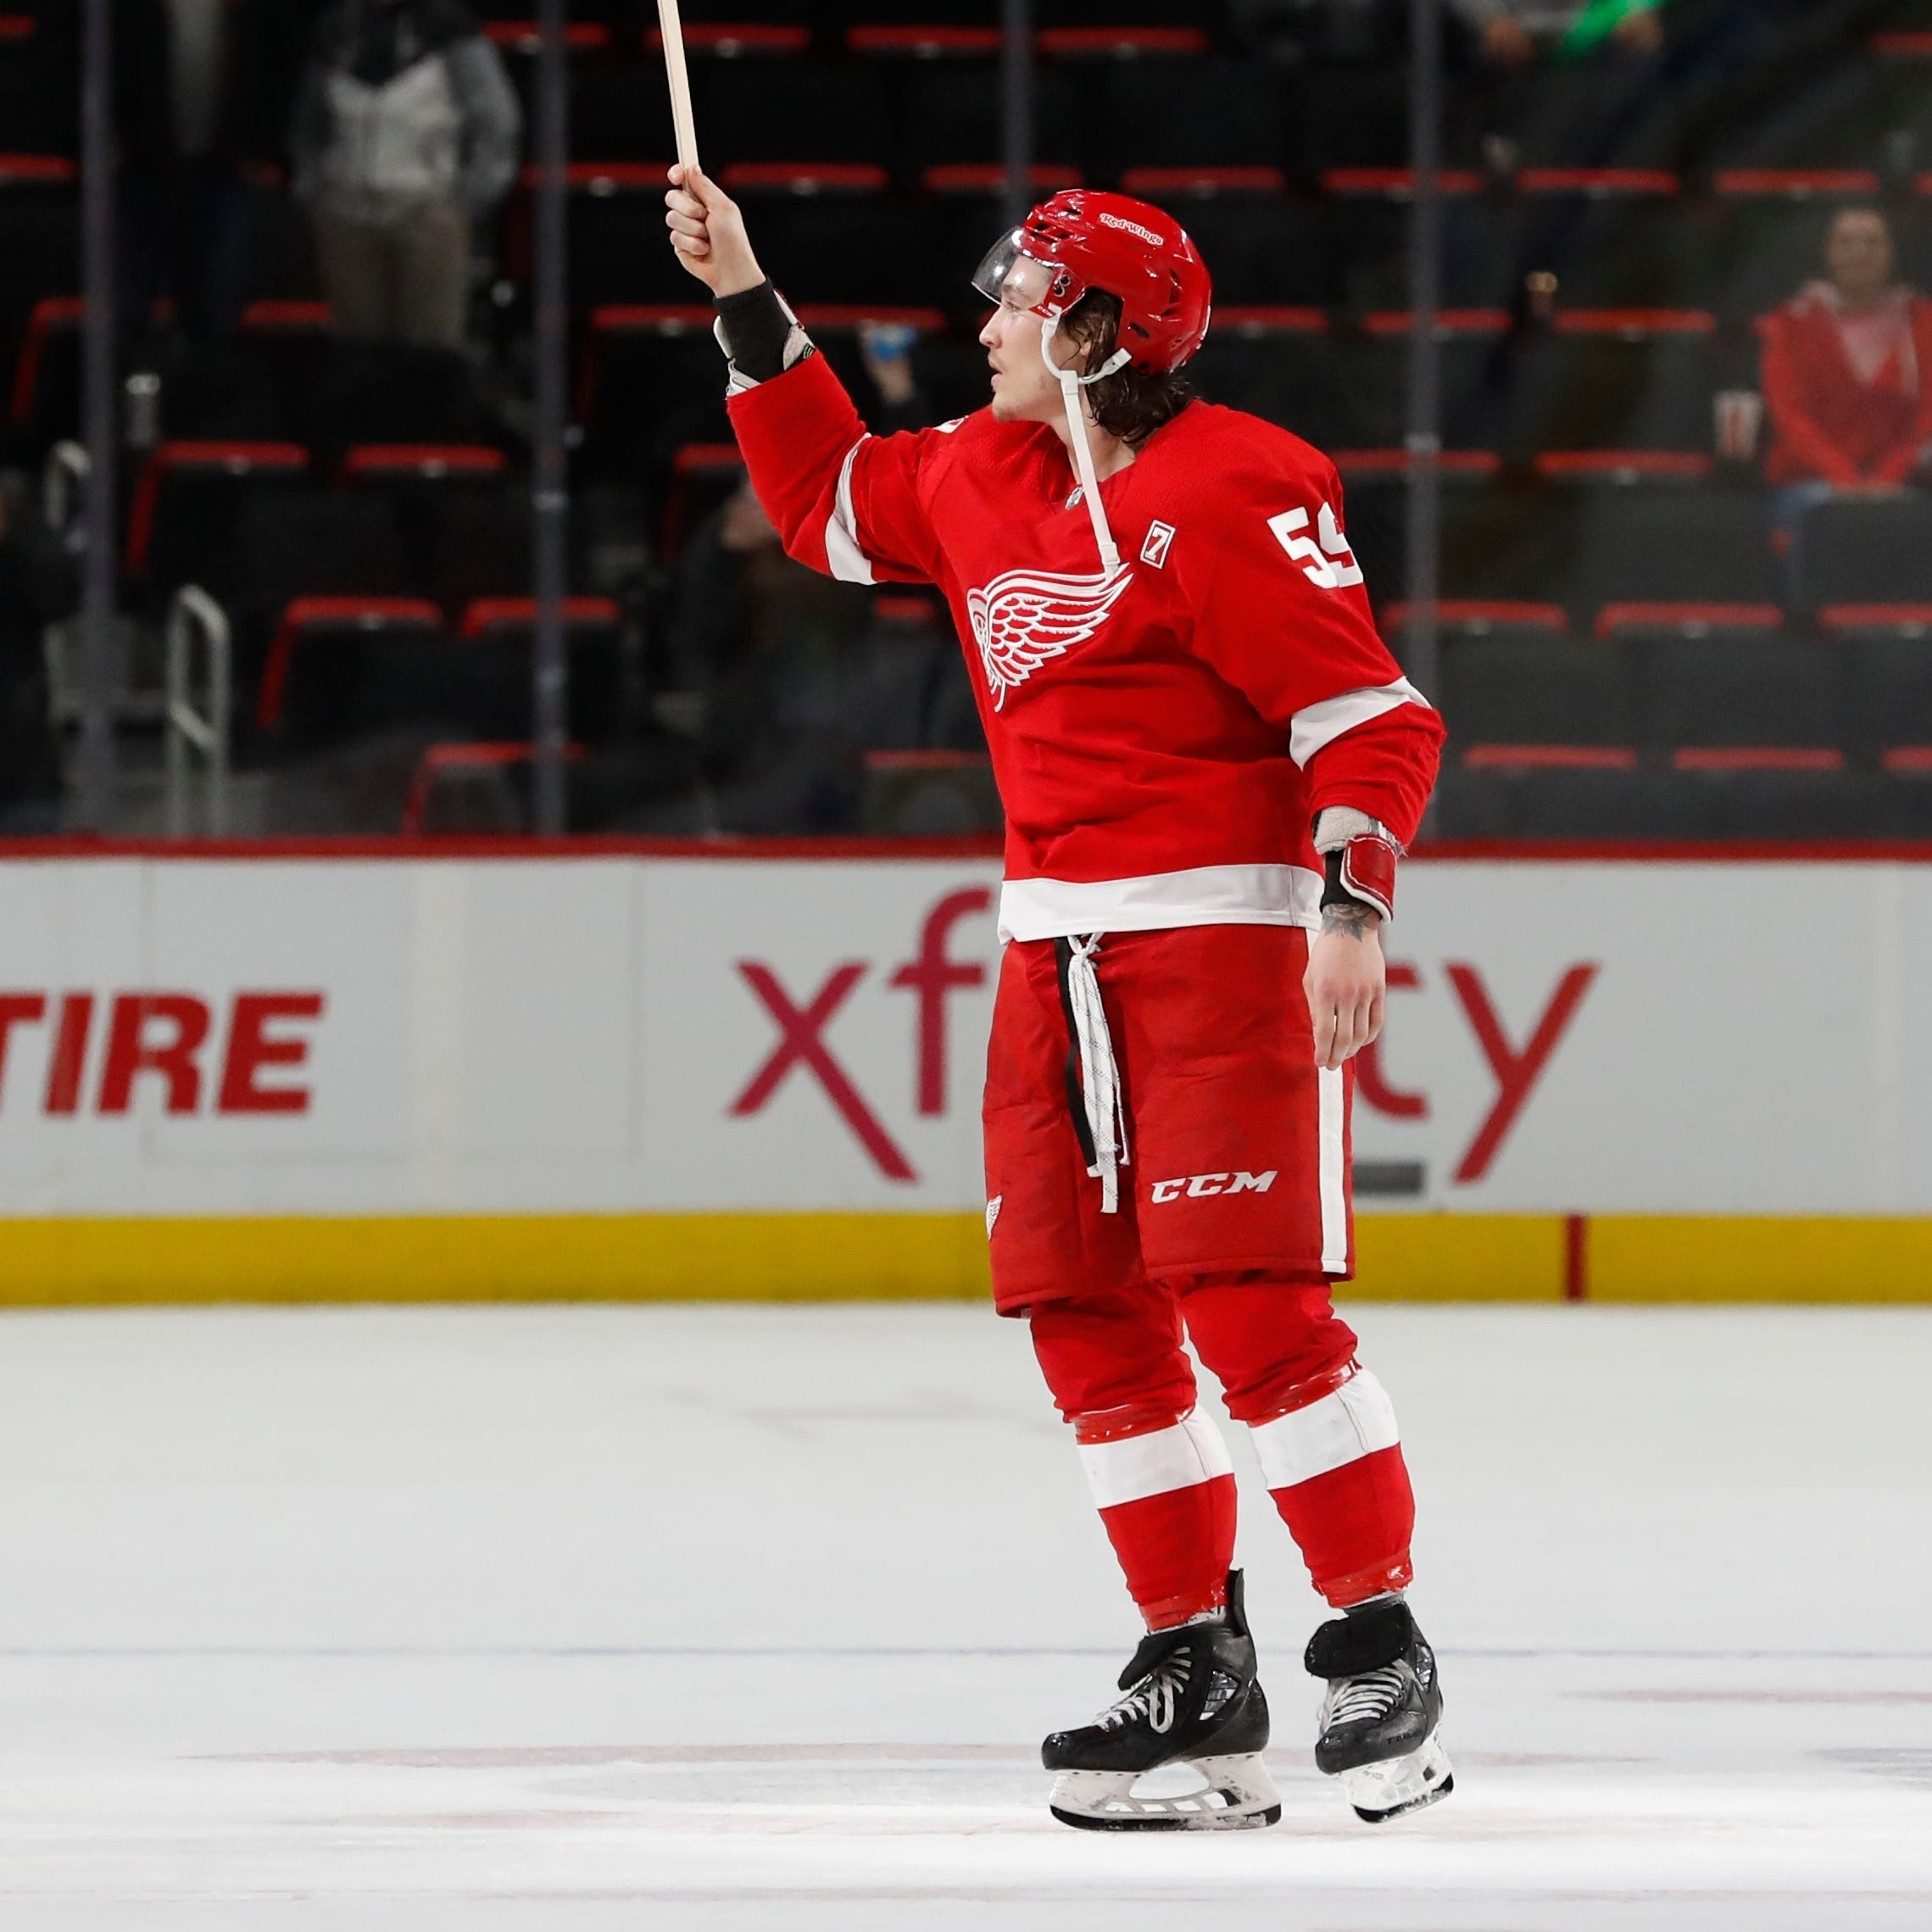 'Hockey player' Bertuzzi took career to another level this season